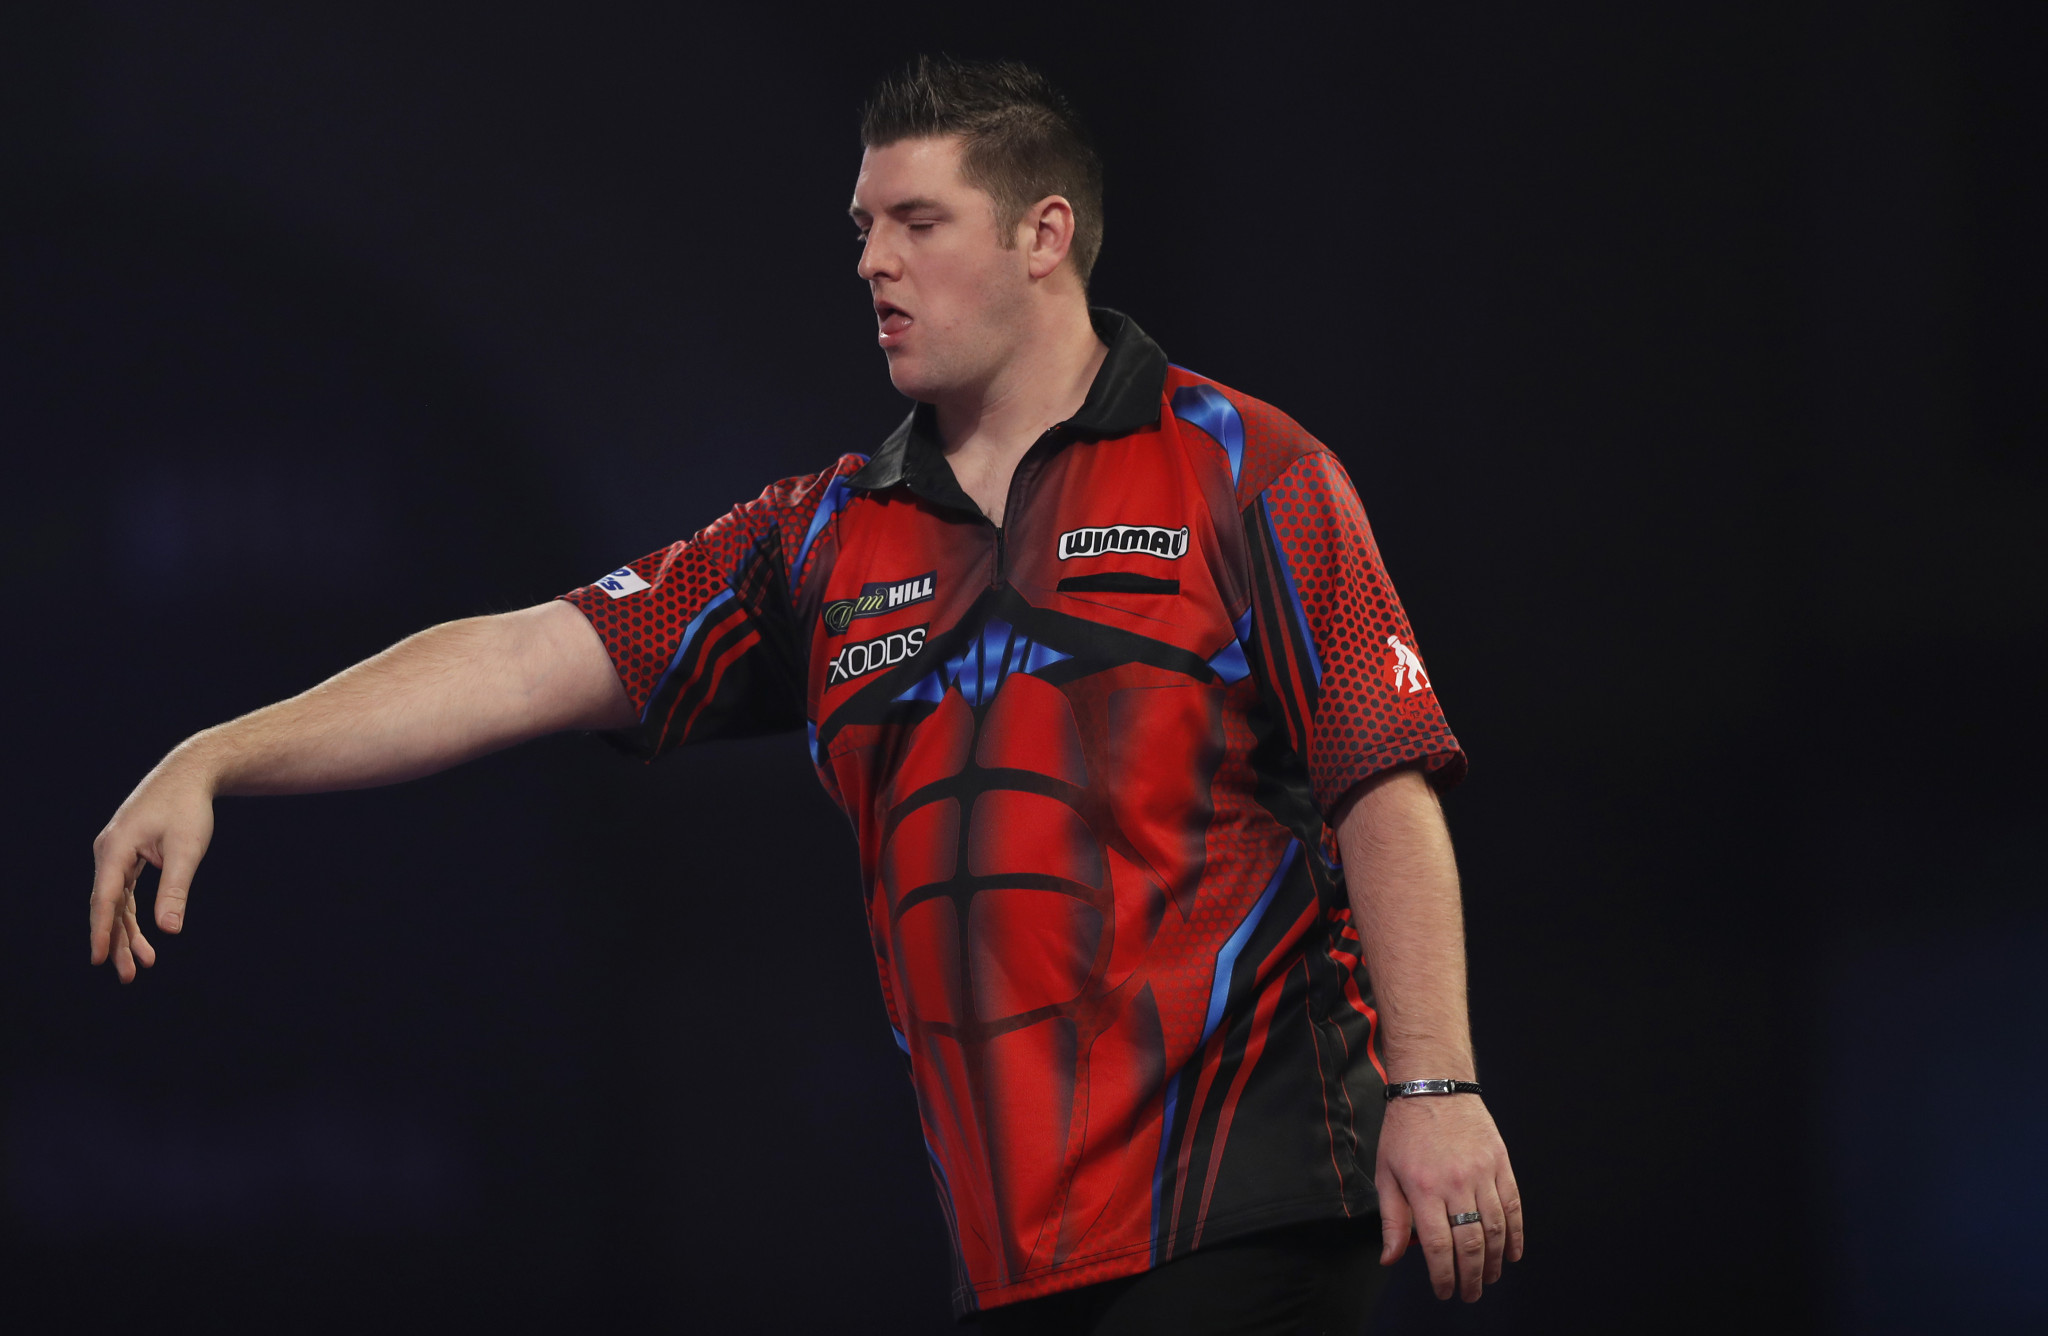 Gurney and De Sousa reach third round as PDC World Darts Championship continues